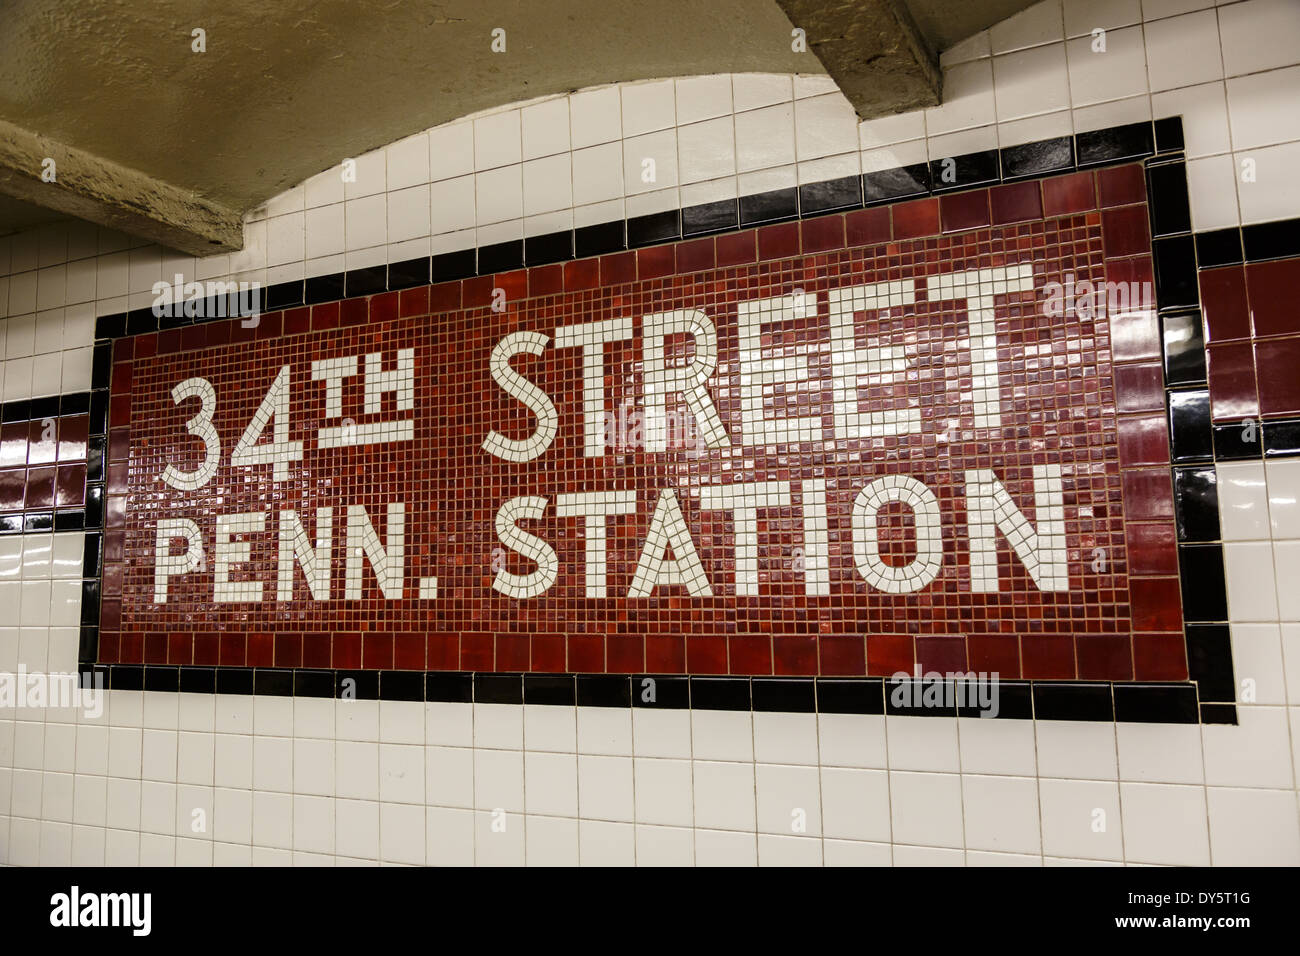 34th street penn pennsylvania station tiled sign manhattan new york city usa stock image